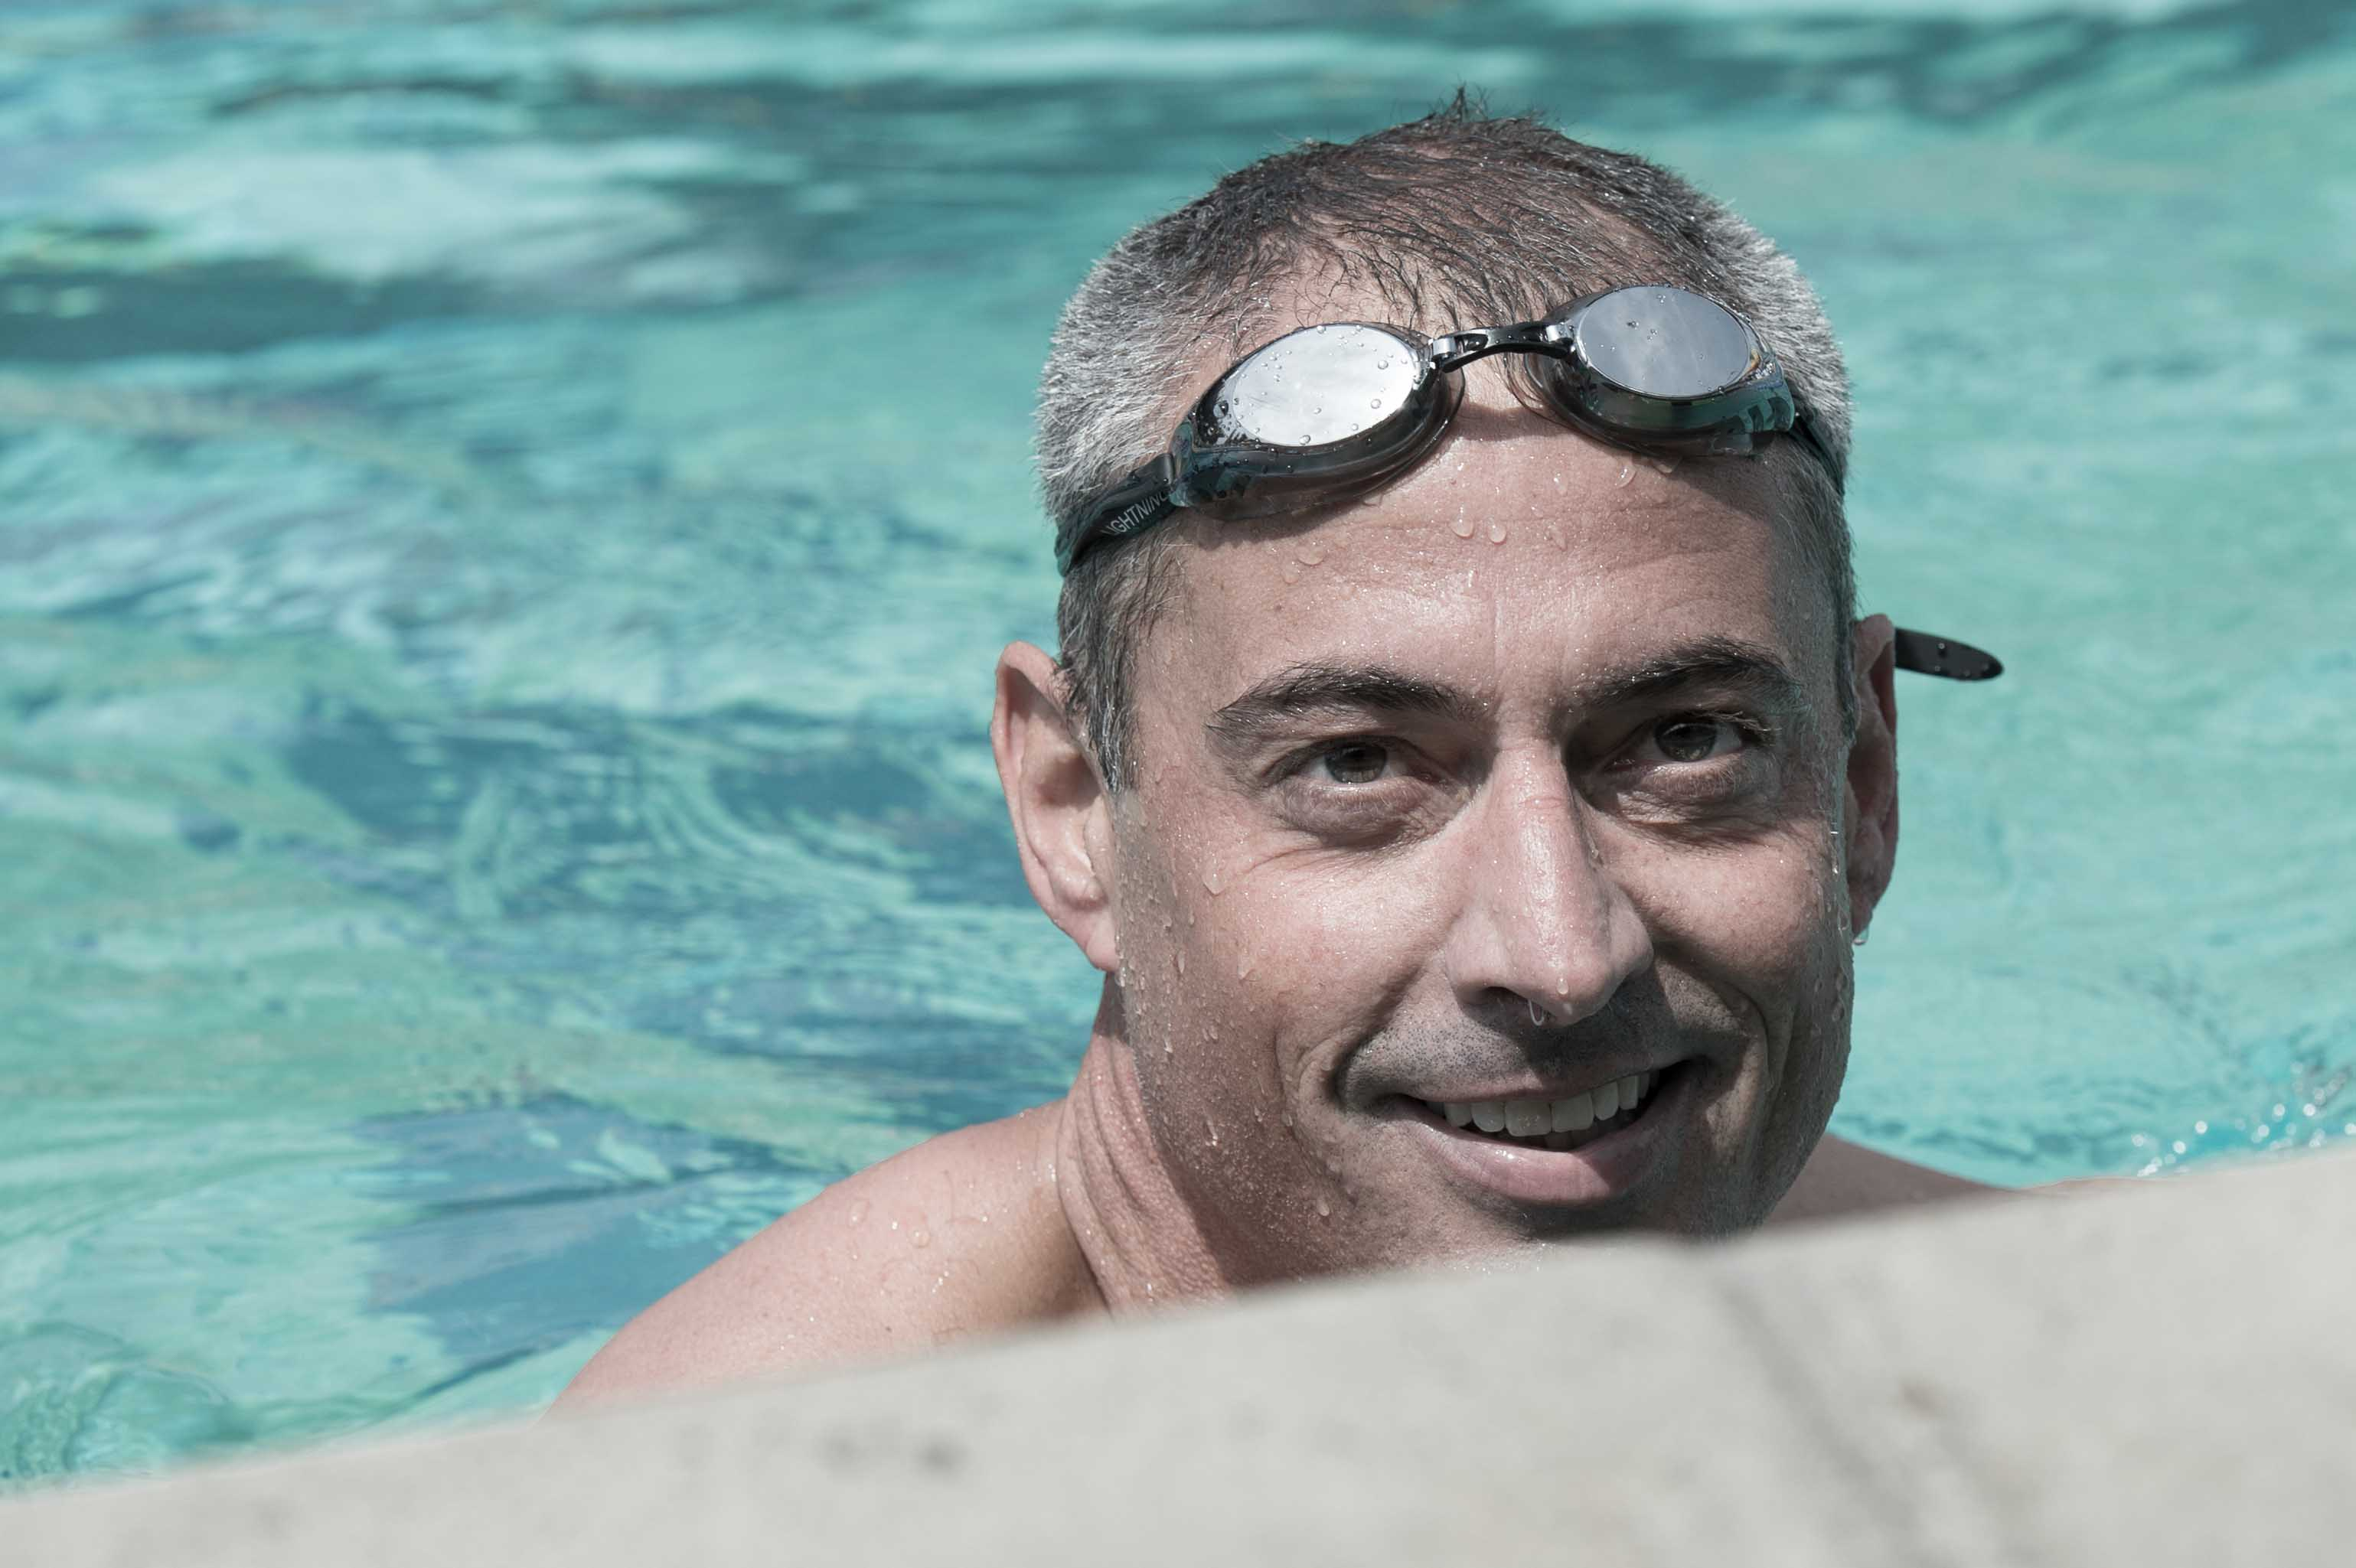 Matt-Biondi-USMS-Nationals-by-Mike-Lewis-2